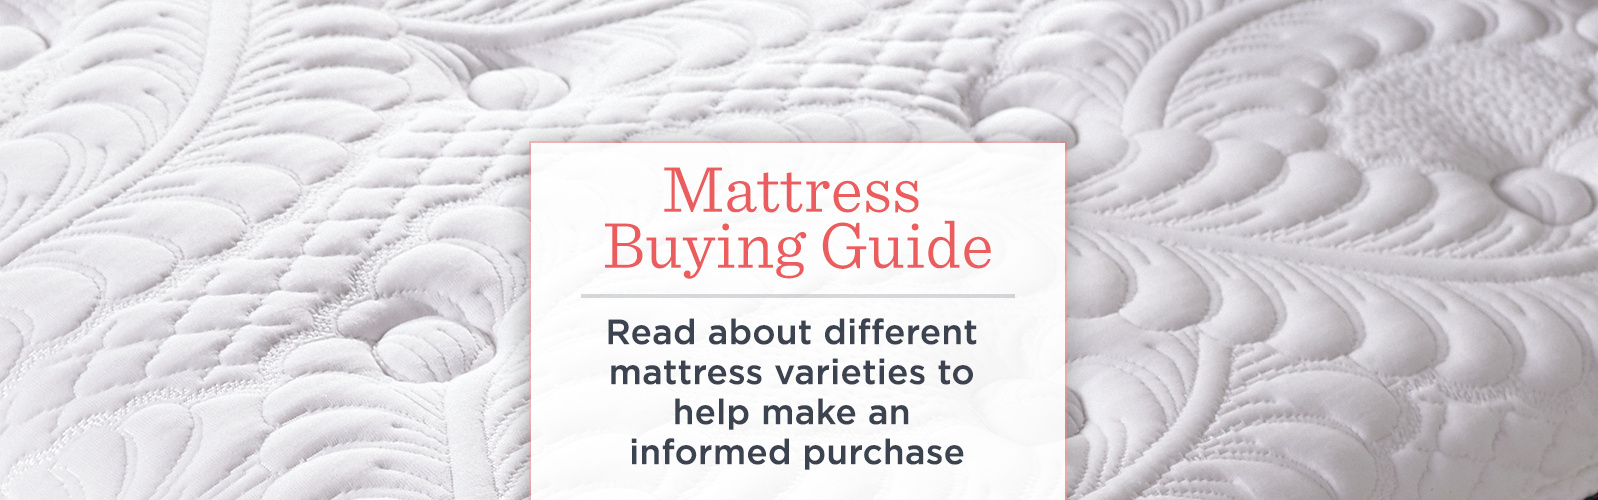 Mattress Buying Guide.  Read about different mattress varieties to help make an informed purchase